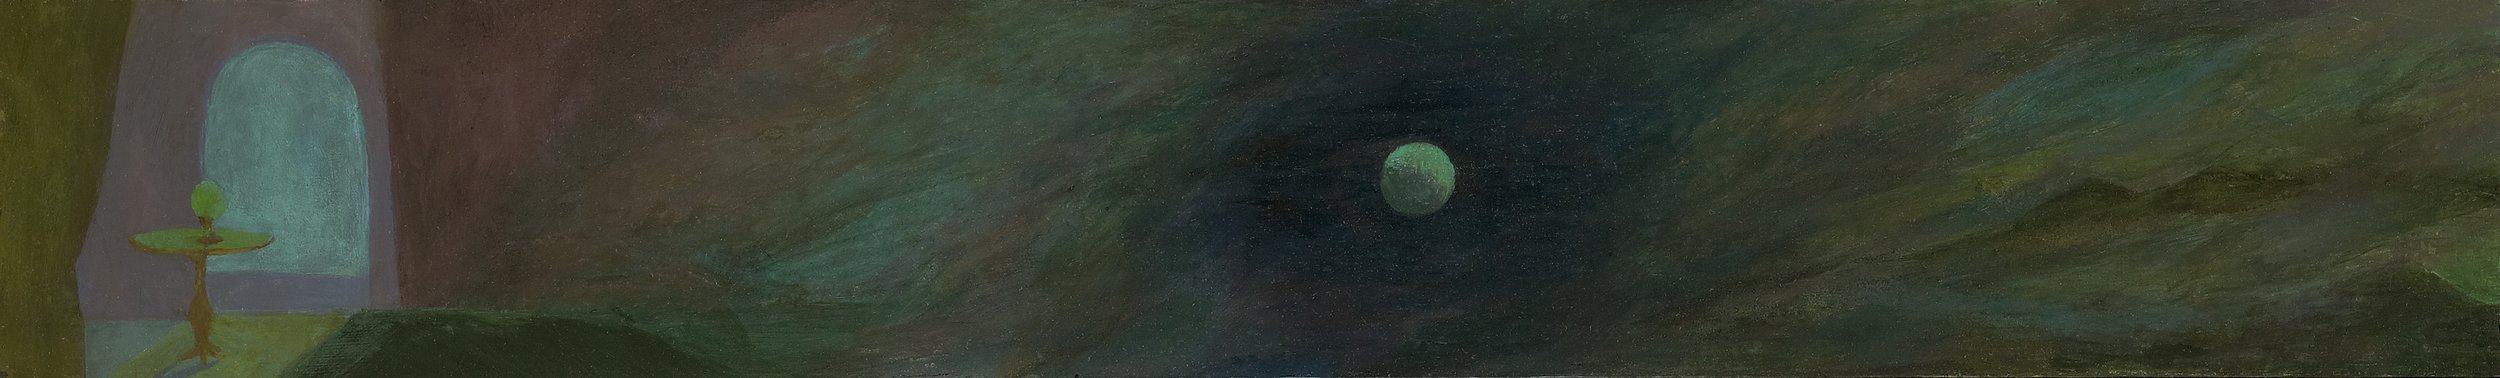 Helen Lundeberg (1908-1999)   Inner/Outer Space , circa 1943  oil on board 6 x 39 inches; 15.2 x 99.1 centimeters